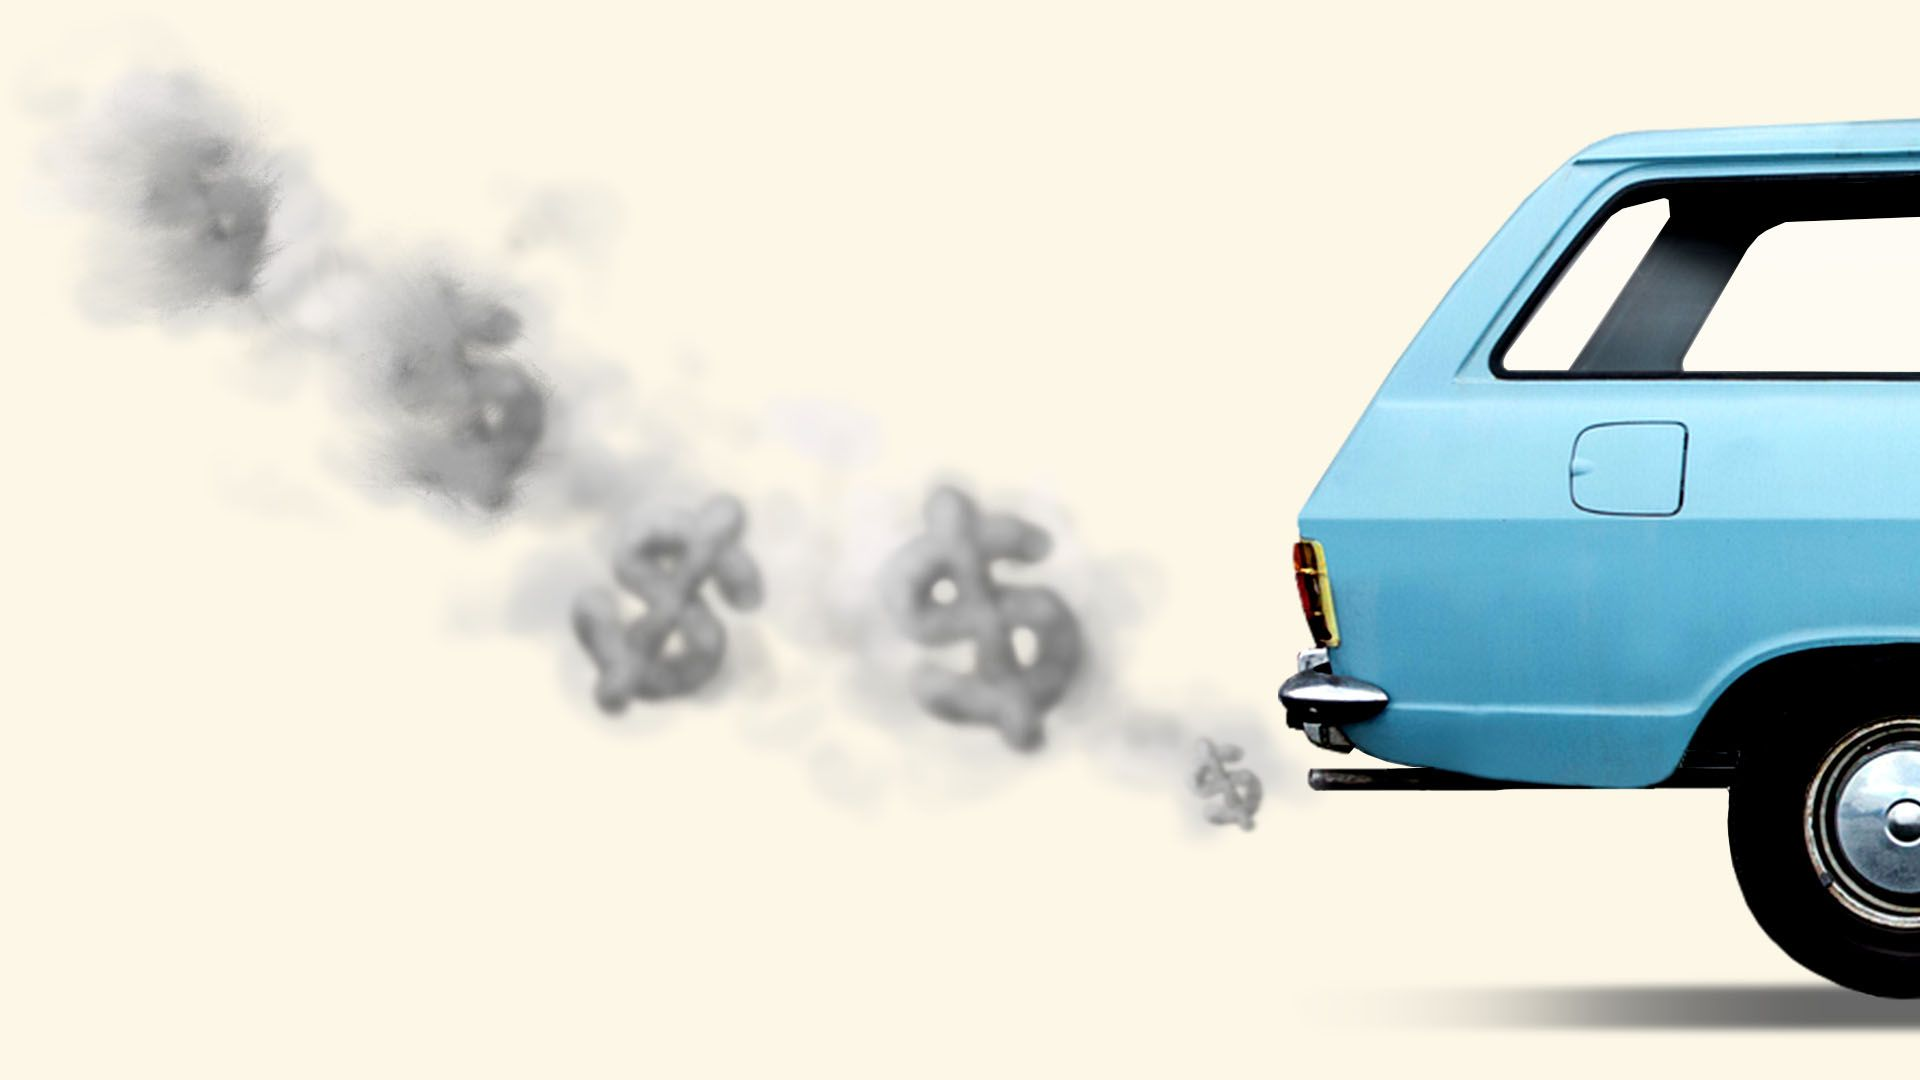 Illustration of car emitting dollar signs